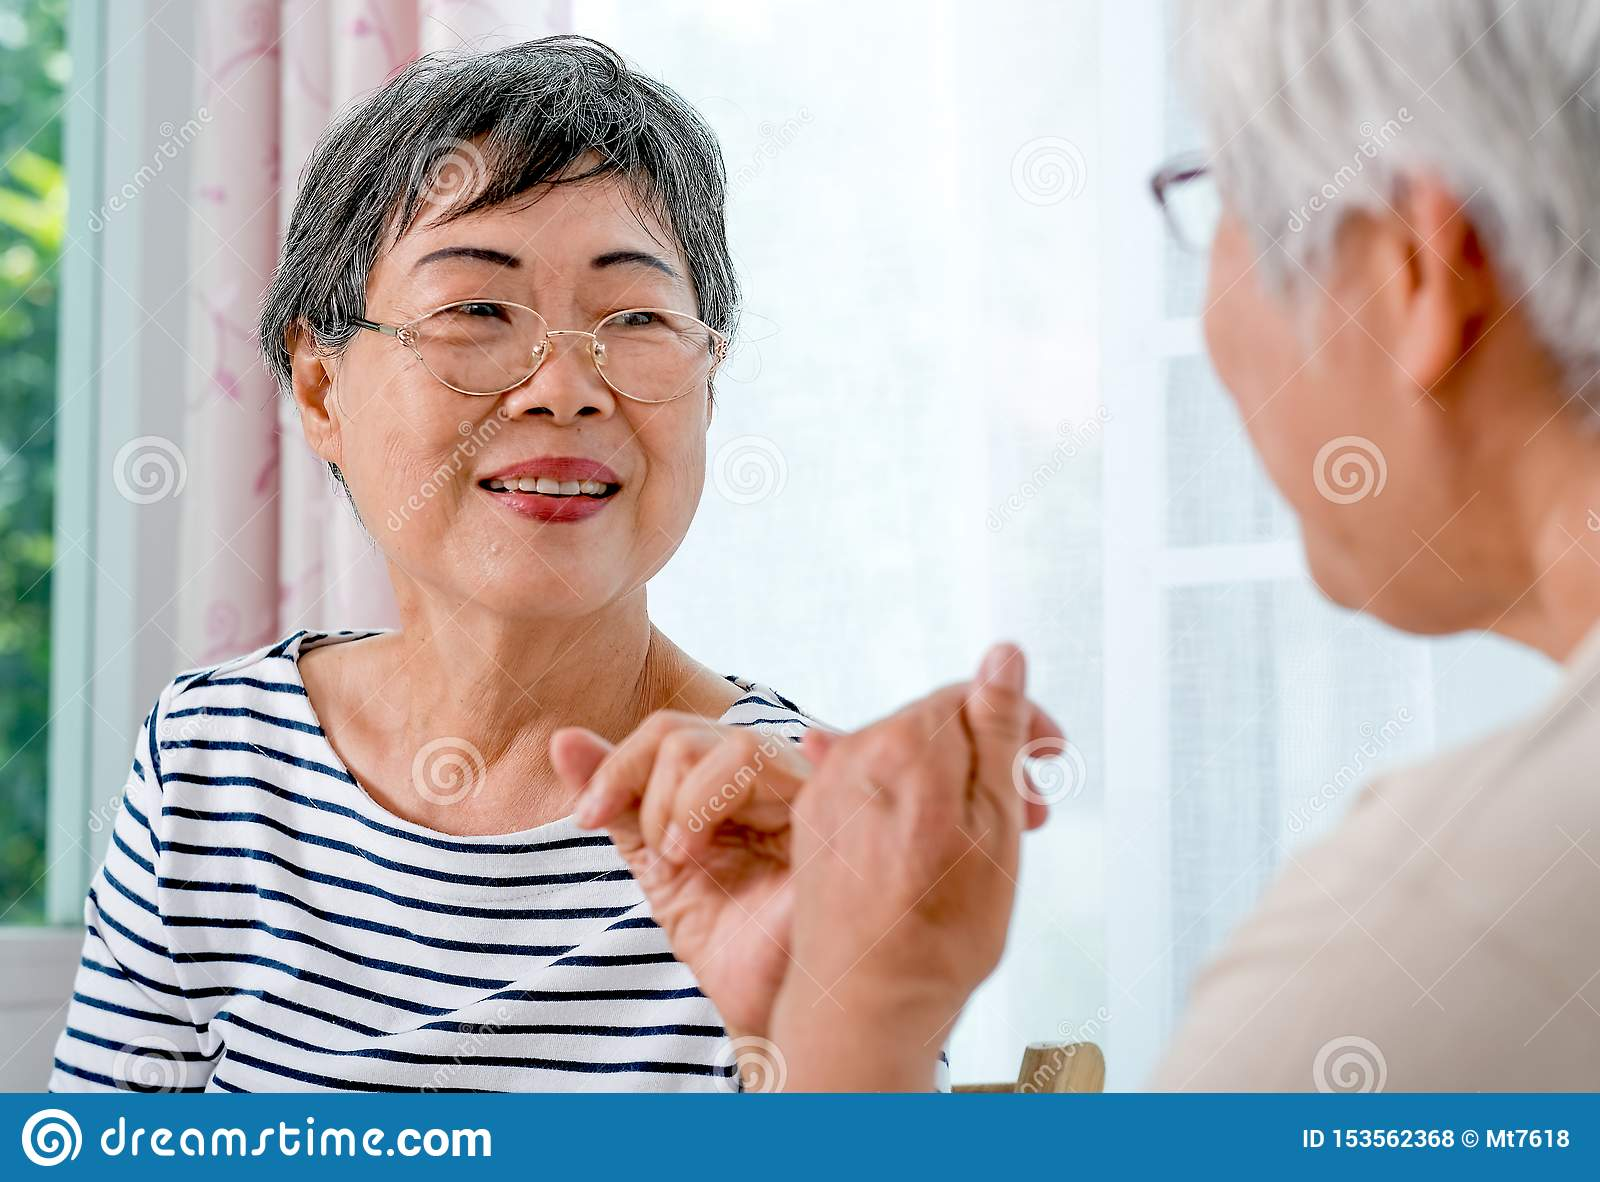 One Asian elderly woman hook each others little finger to the other with smiling in front of balcony in the house